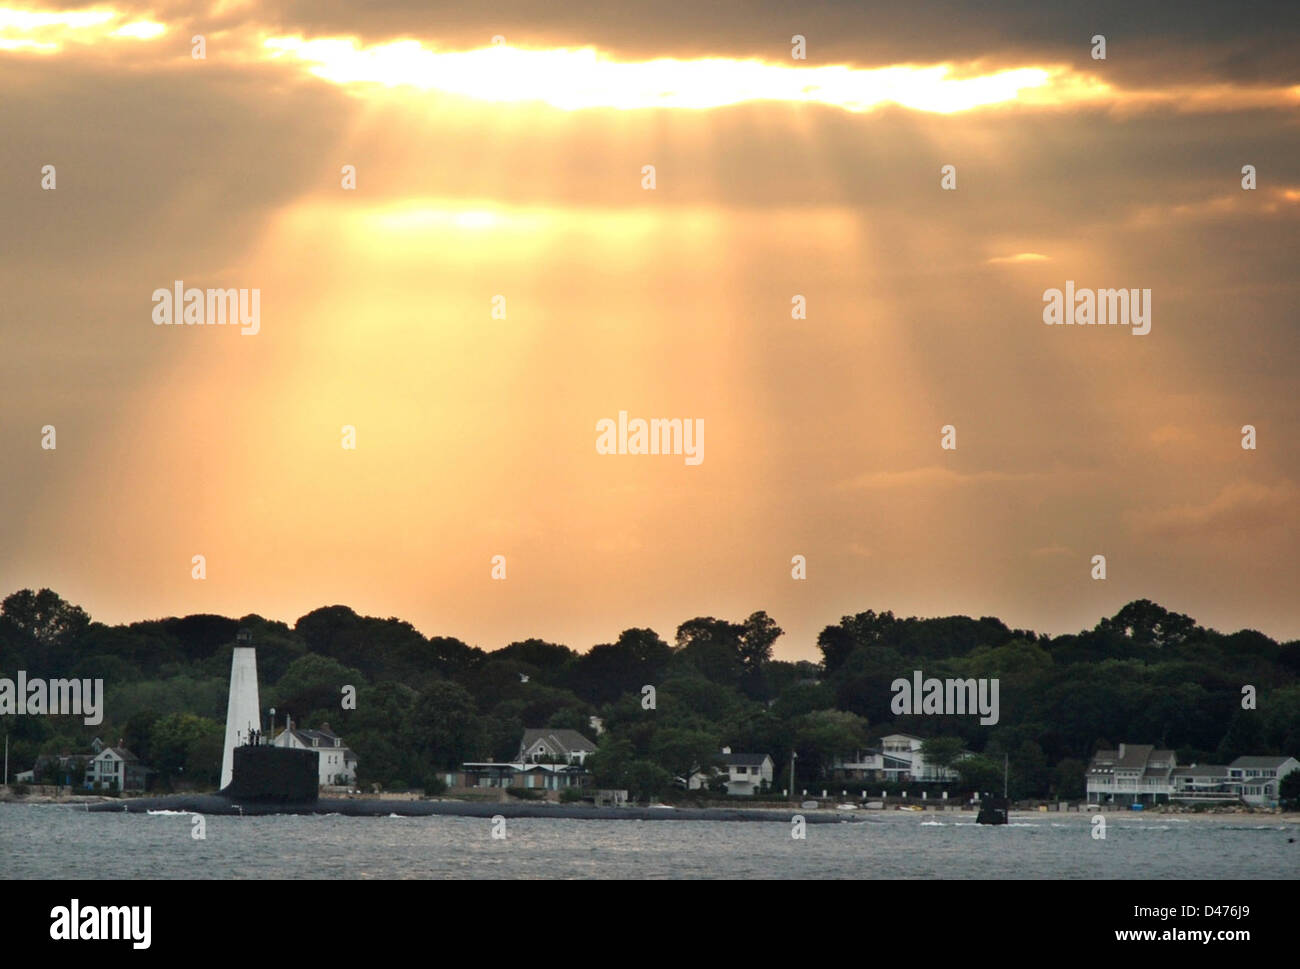 USS Texas departs Groton for her homeport in Pearl Harbor. - Stock Image